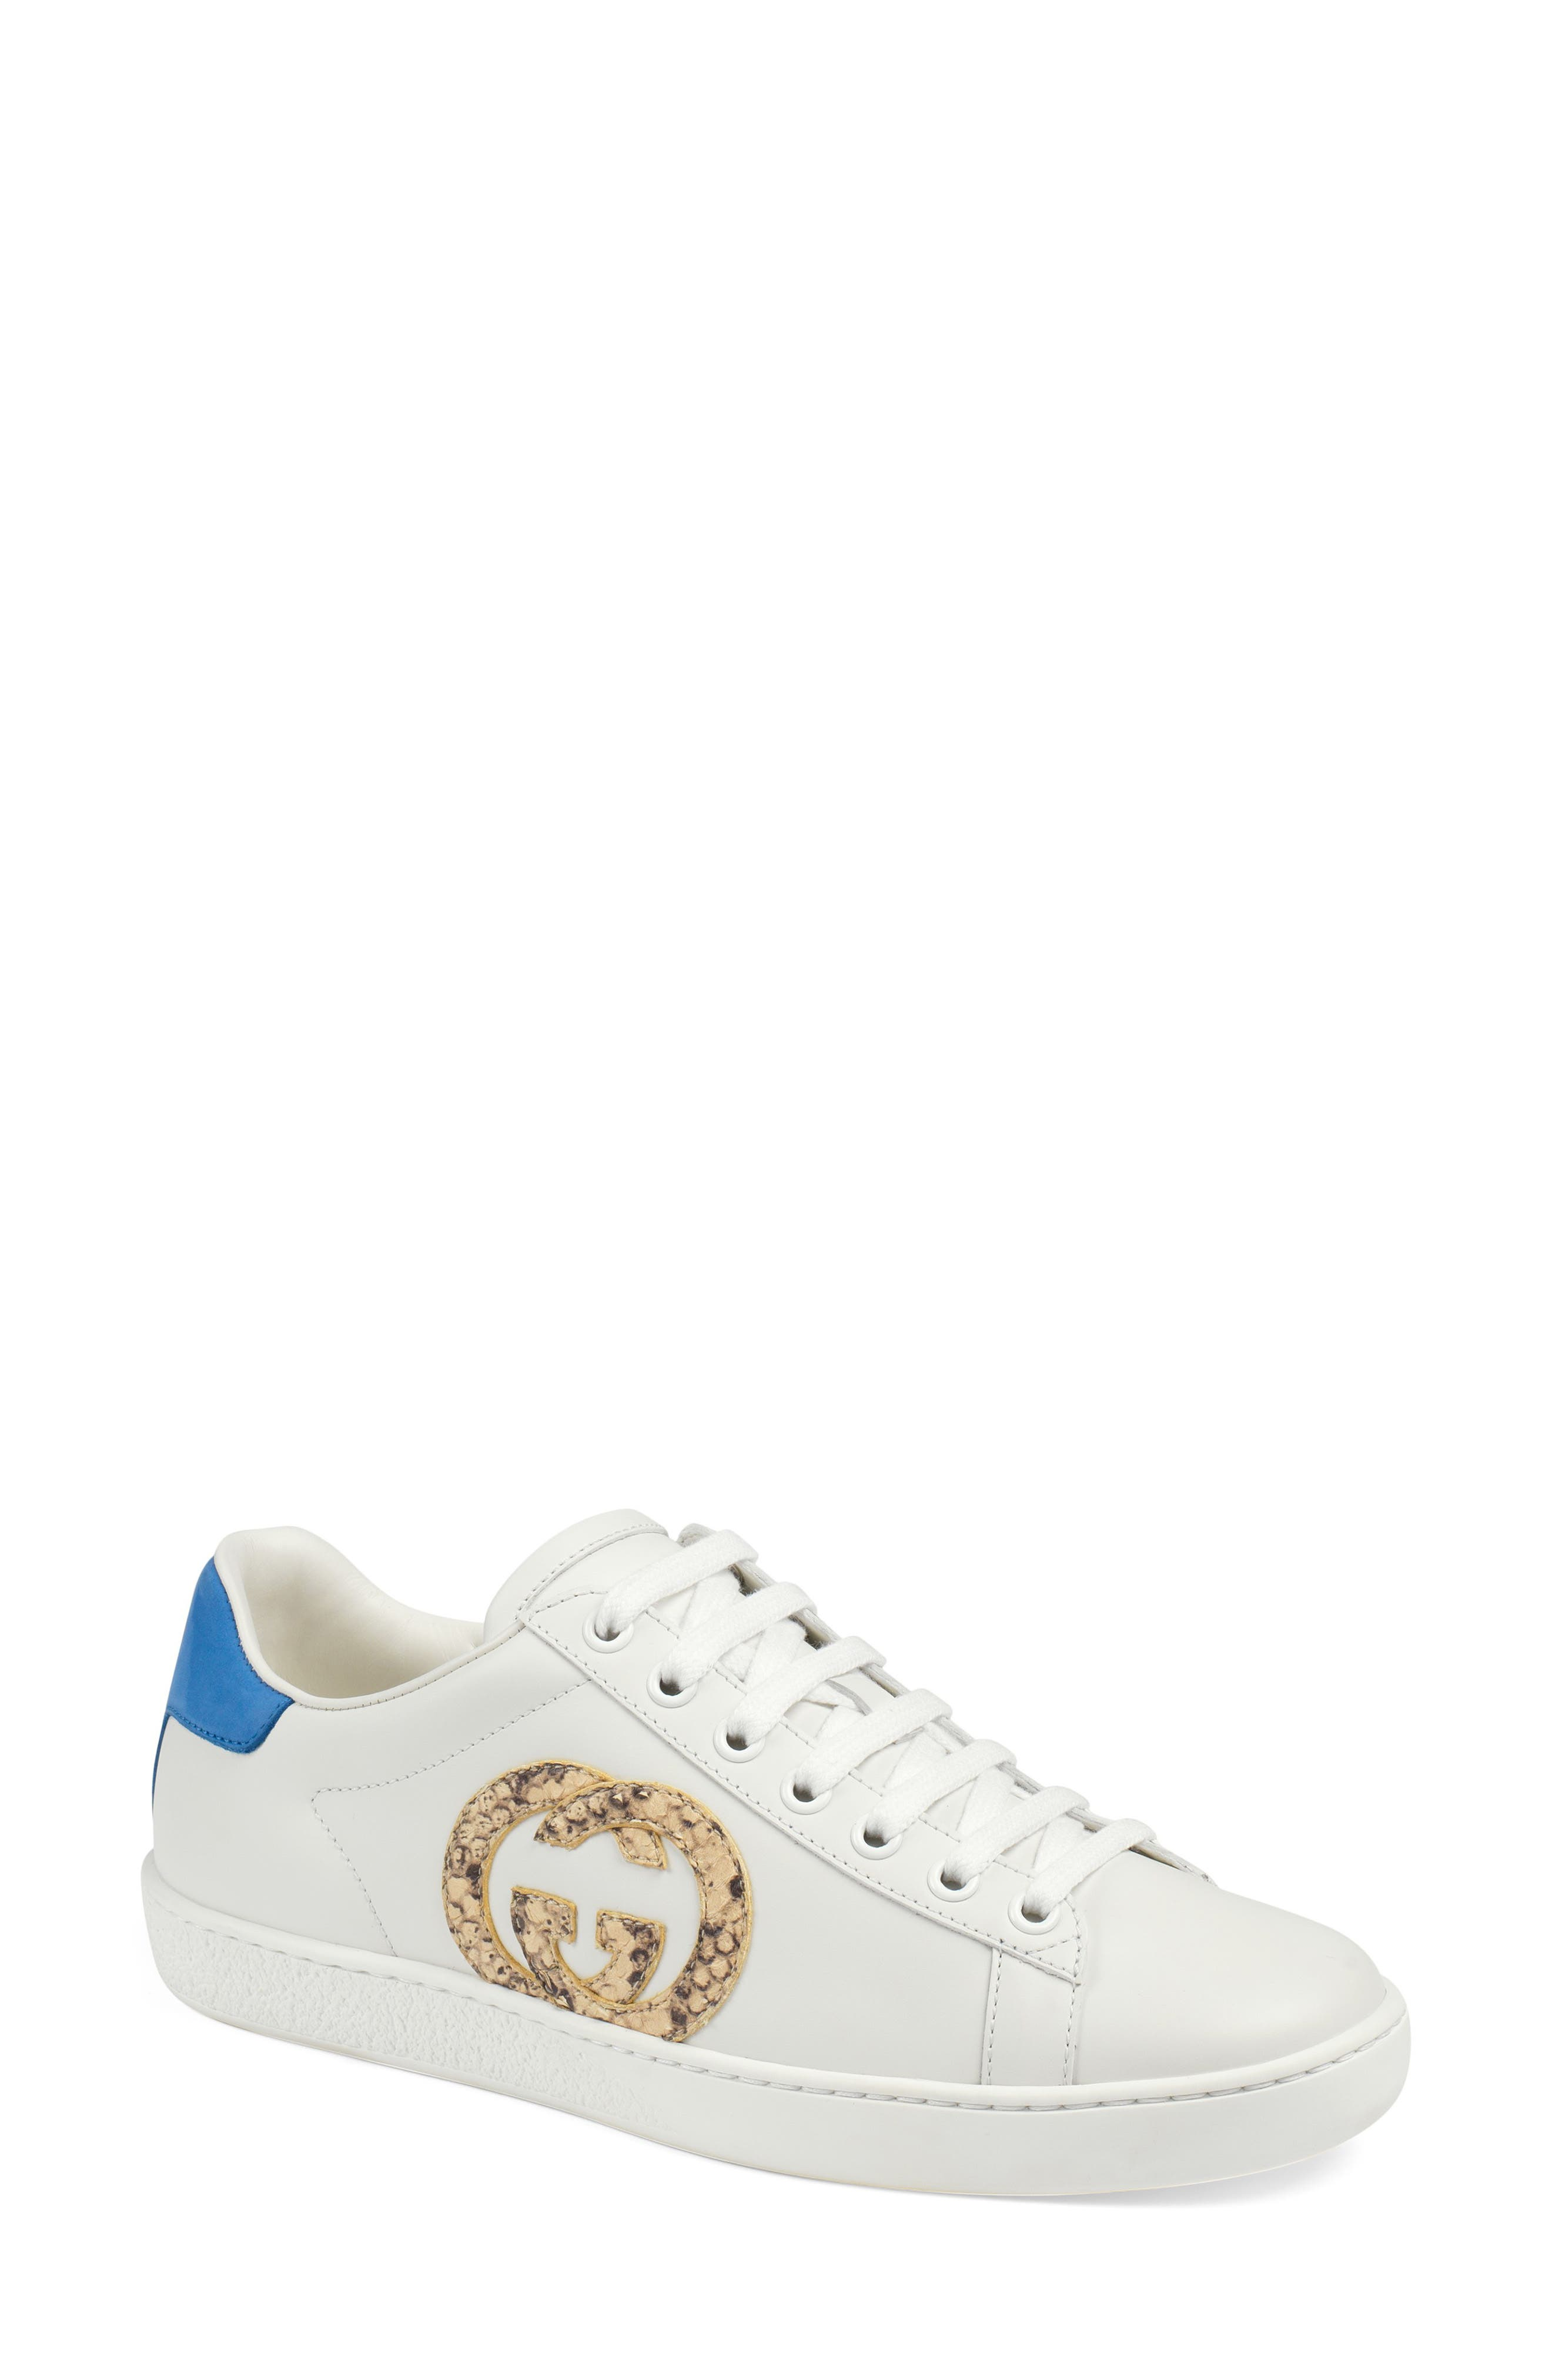 Women's Sneakers Gucci Shoes | Nordstrom